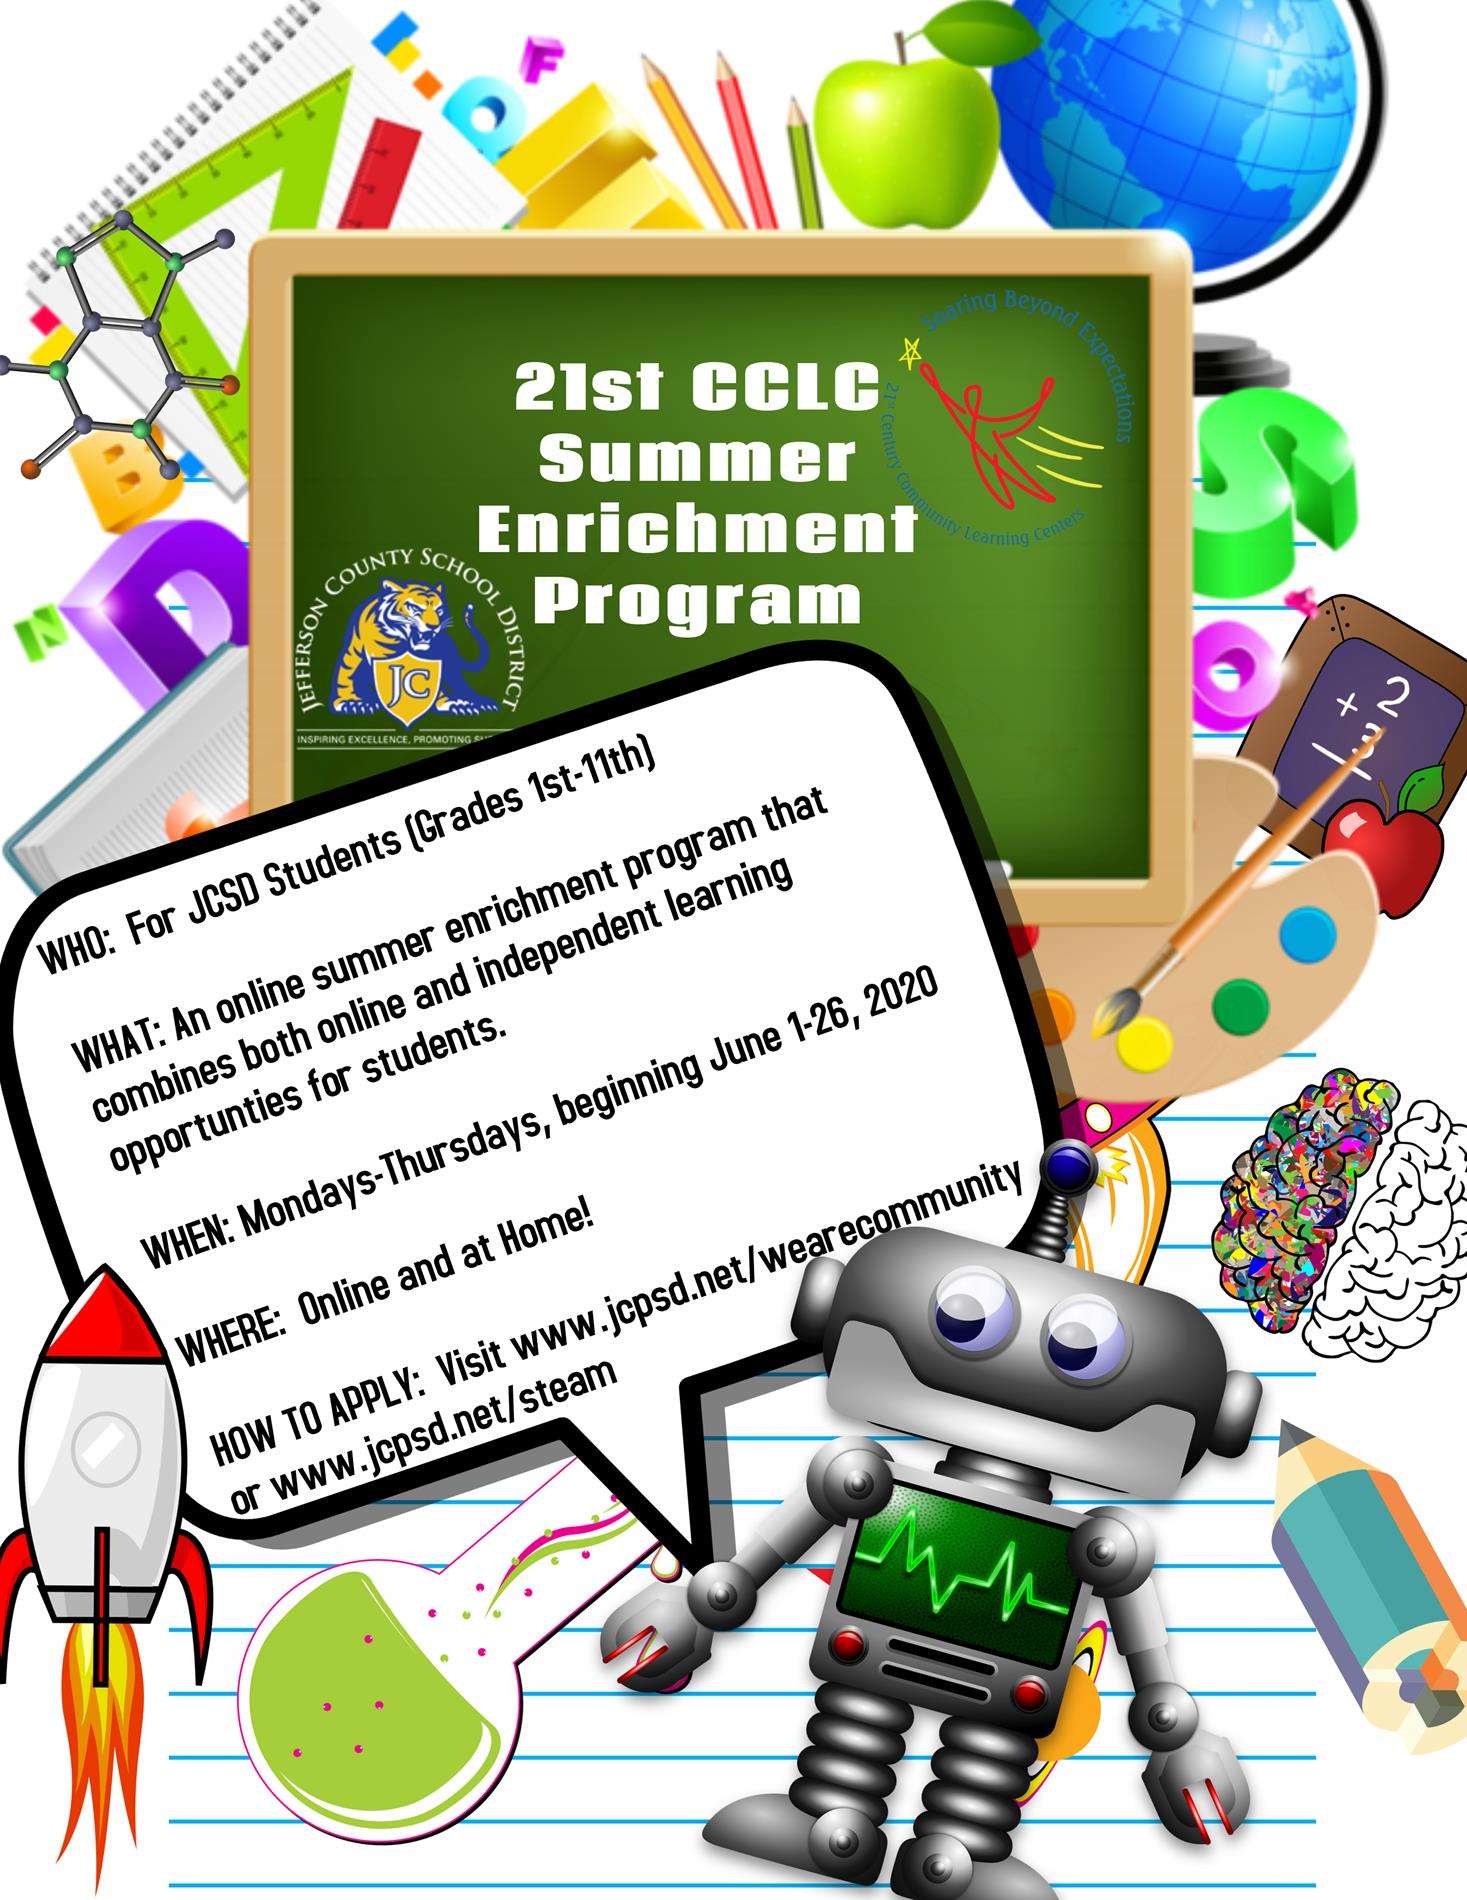 21st CCLC Online Summer Enrichment